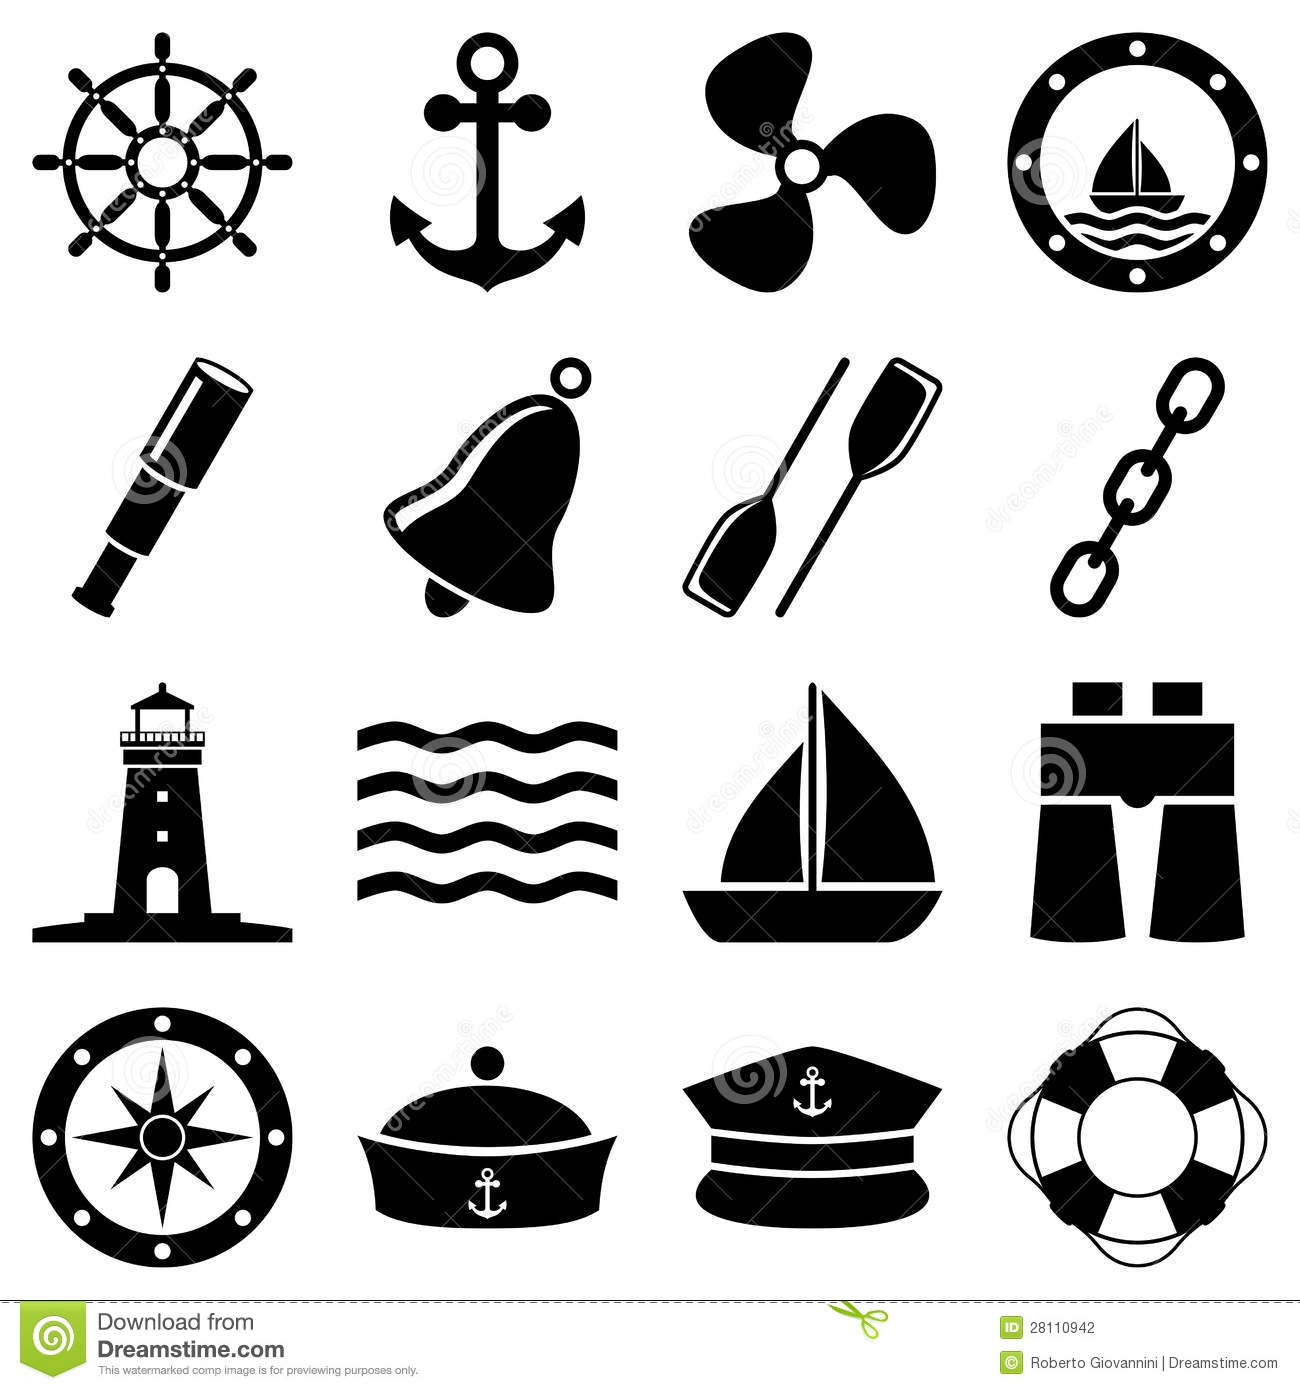 Nautical clipart black and white » Clipart Station.